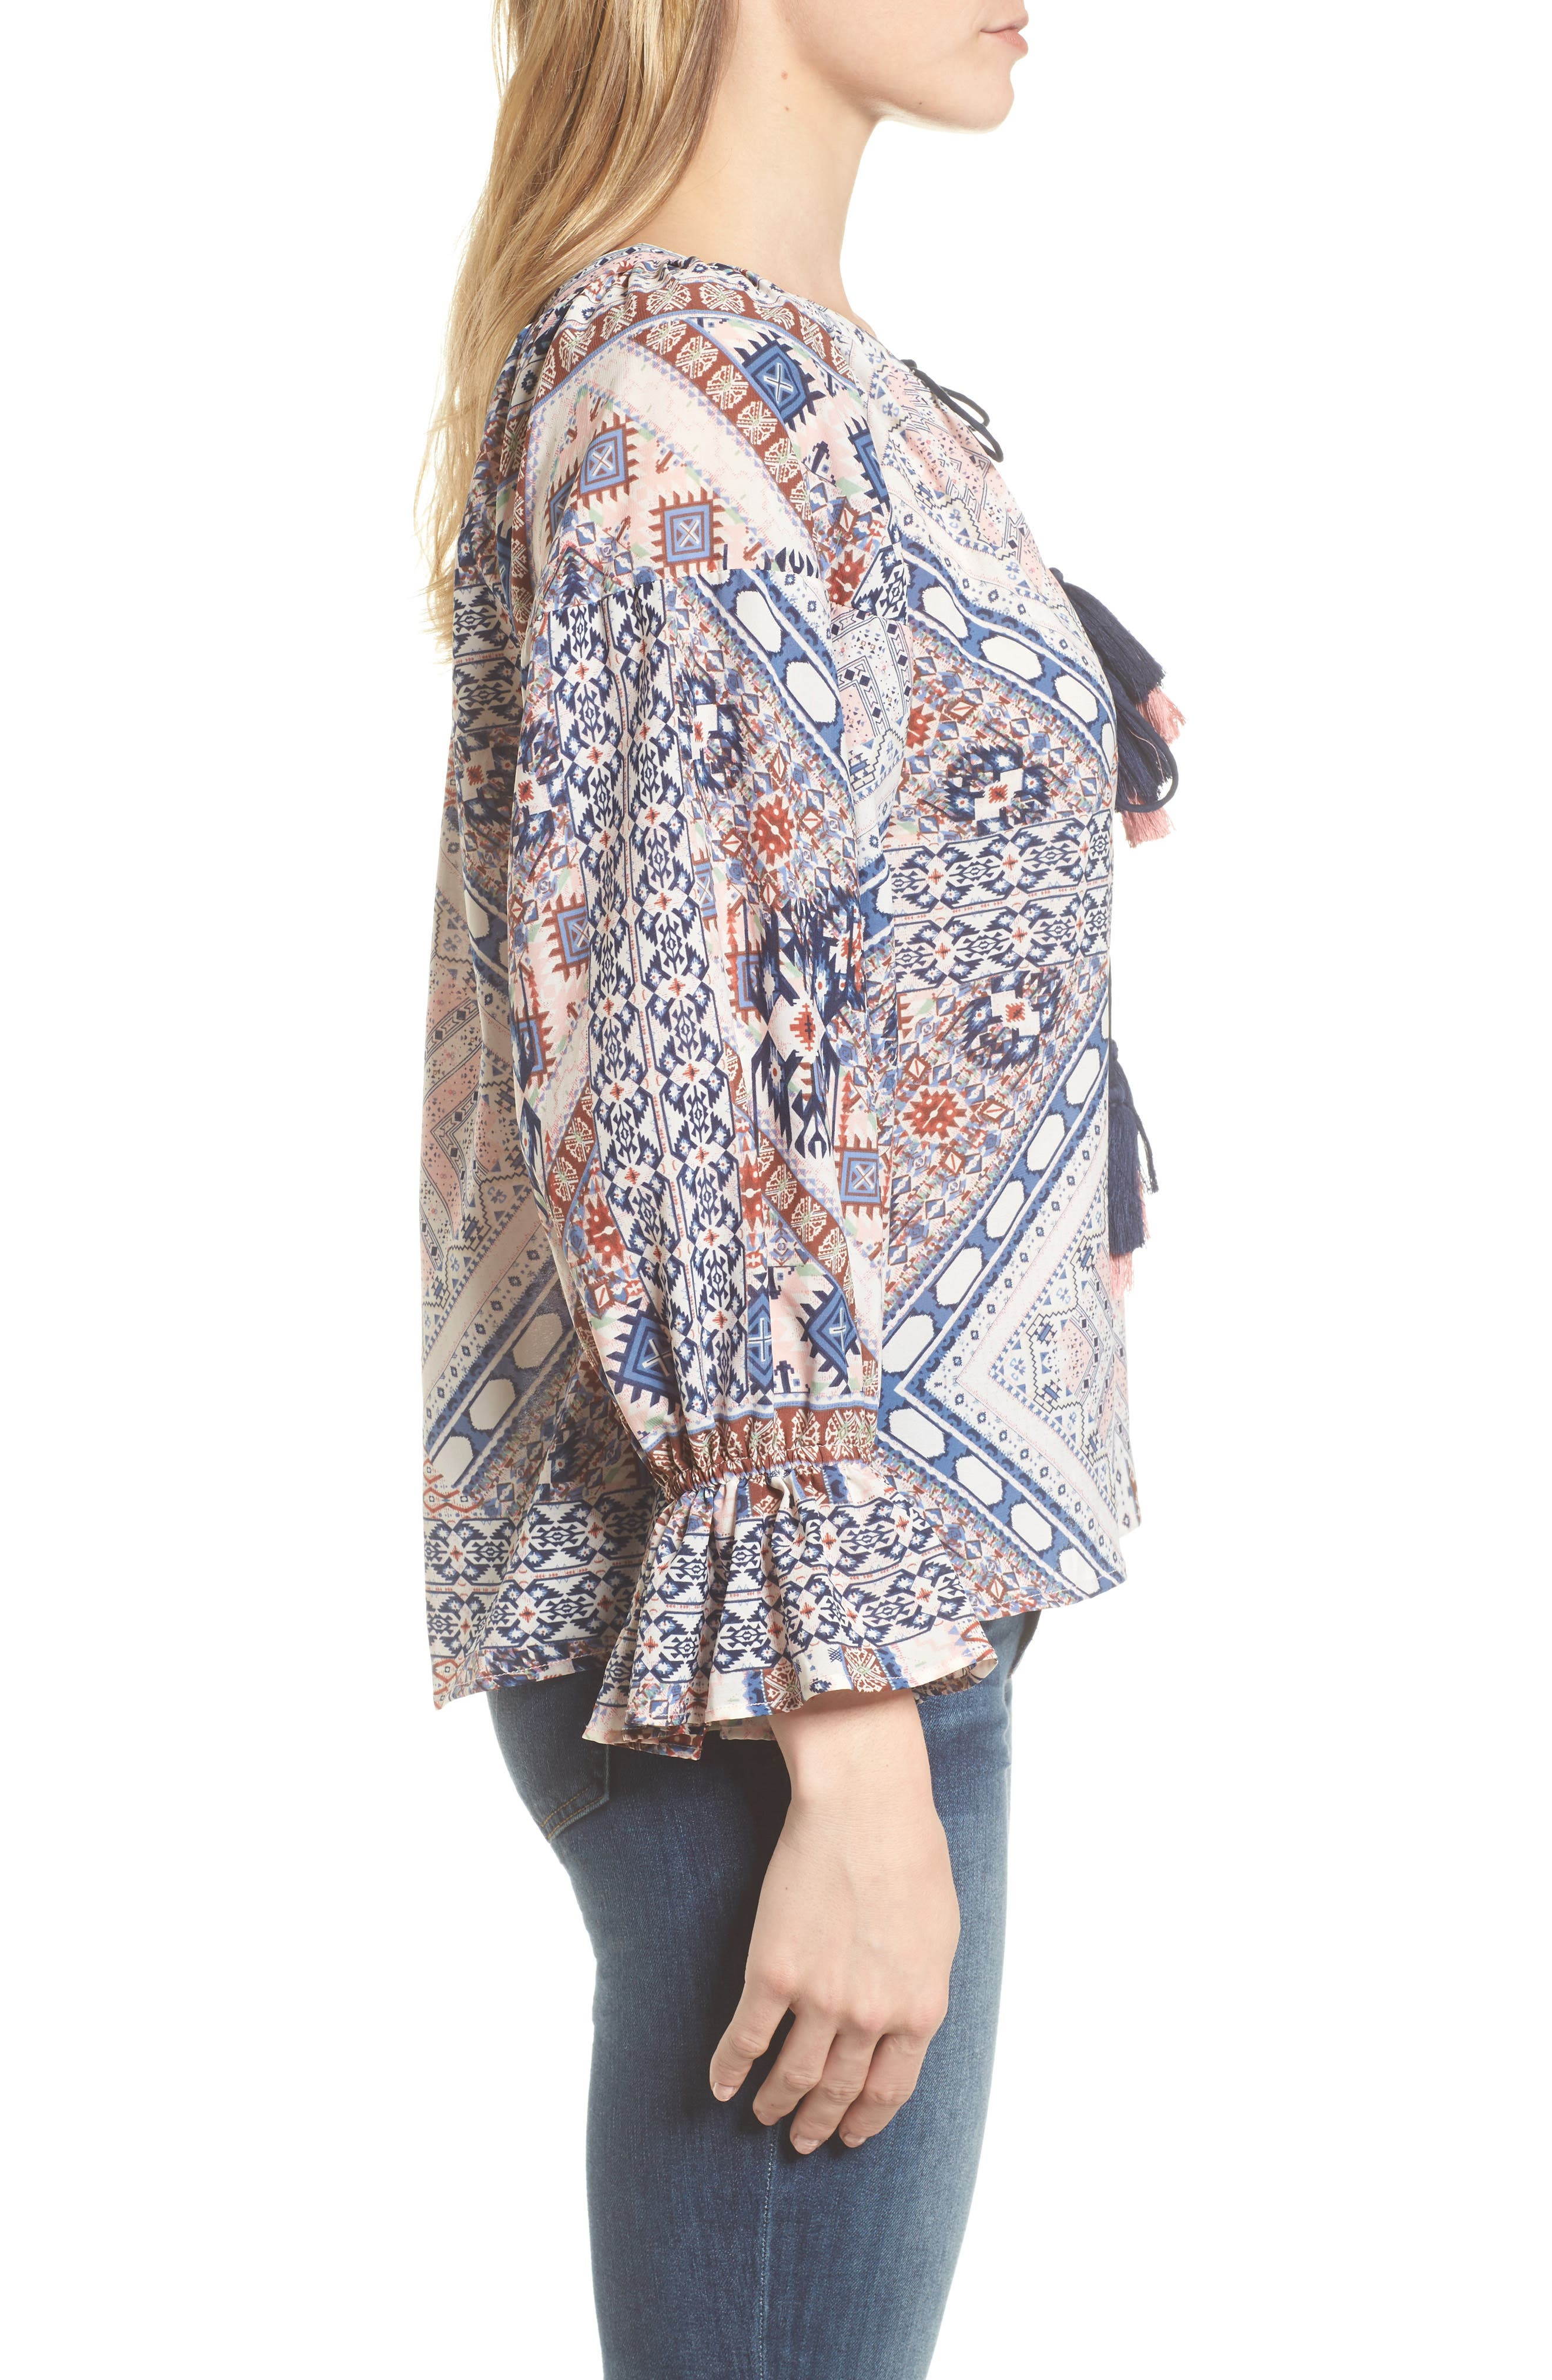 Belfast Ikat Peasant Blouse,                             Alternate thumbnail 3, color,                             Ikat Print